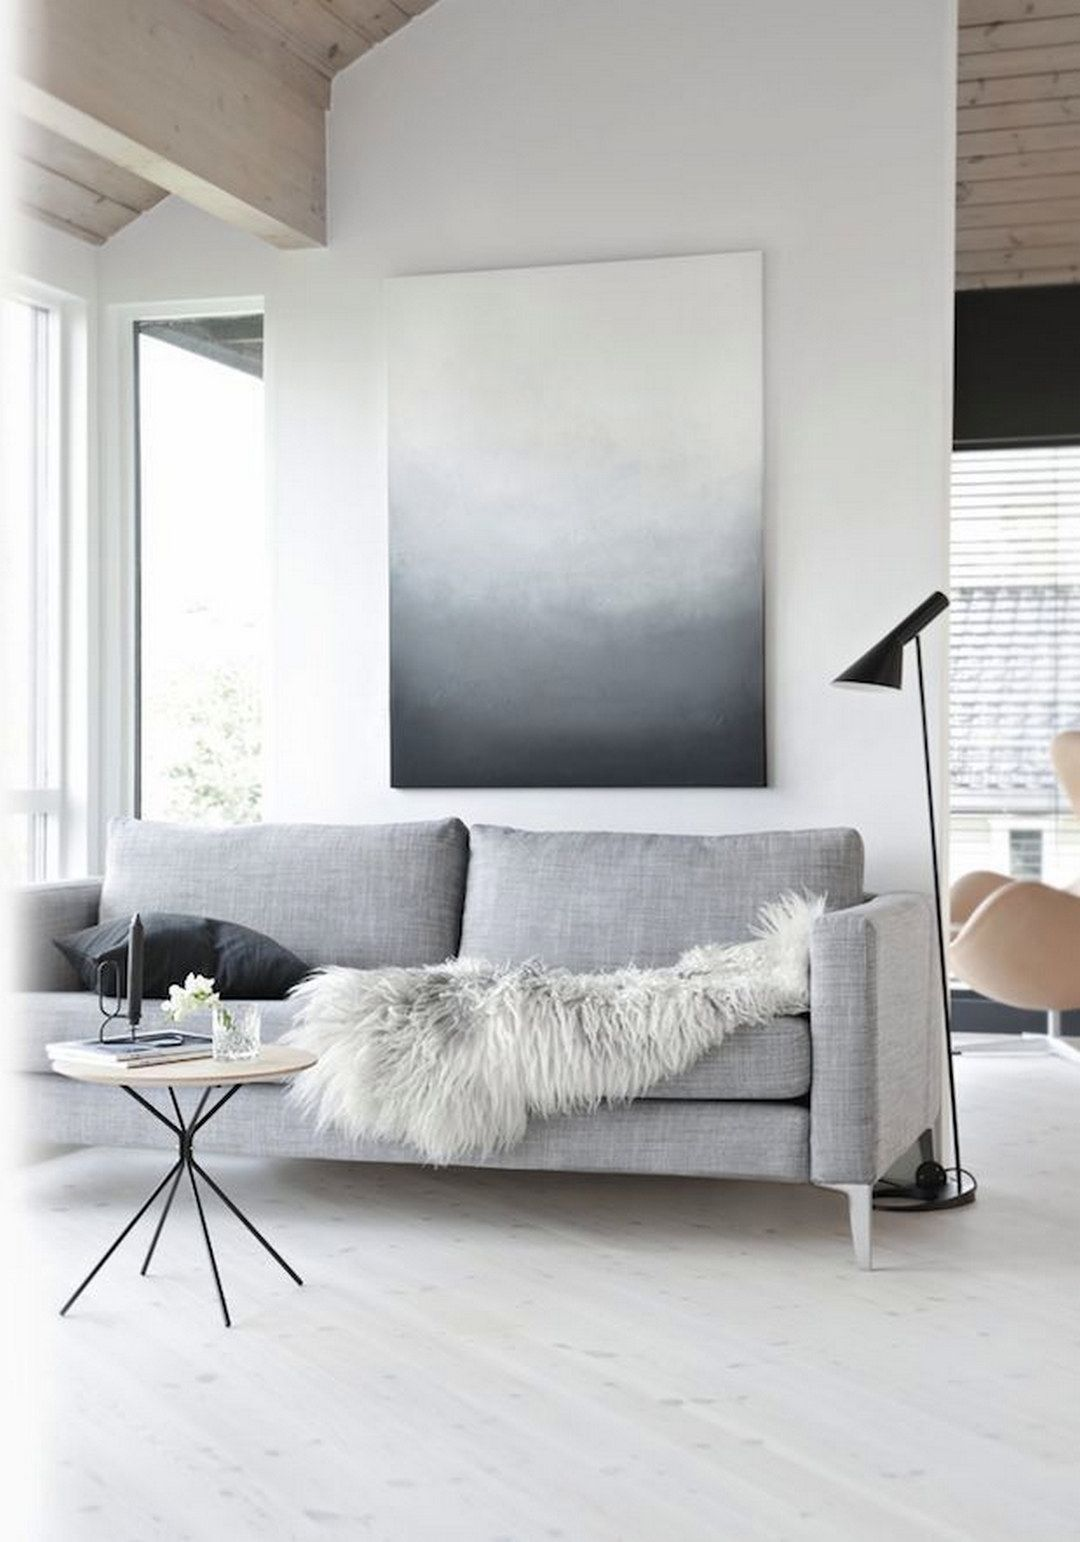 99 Fantastic Minimalist Home Decor Ideas  Https://www.futuristarchitecture.com/11589 Minimalist Decor.html